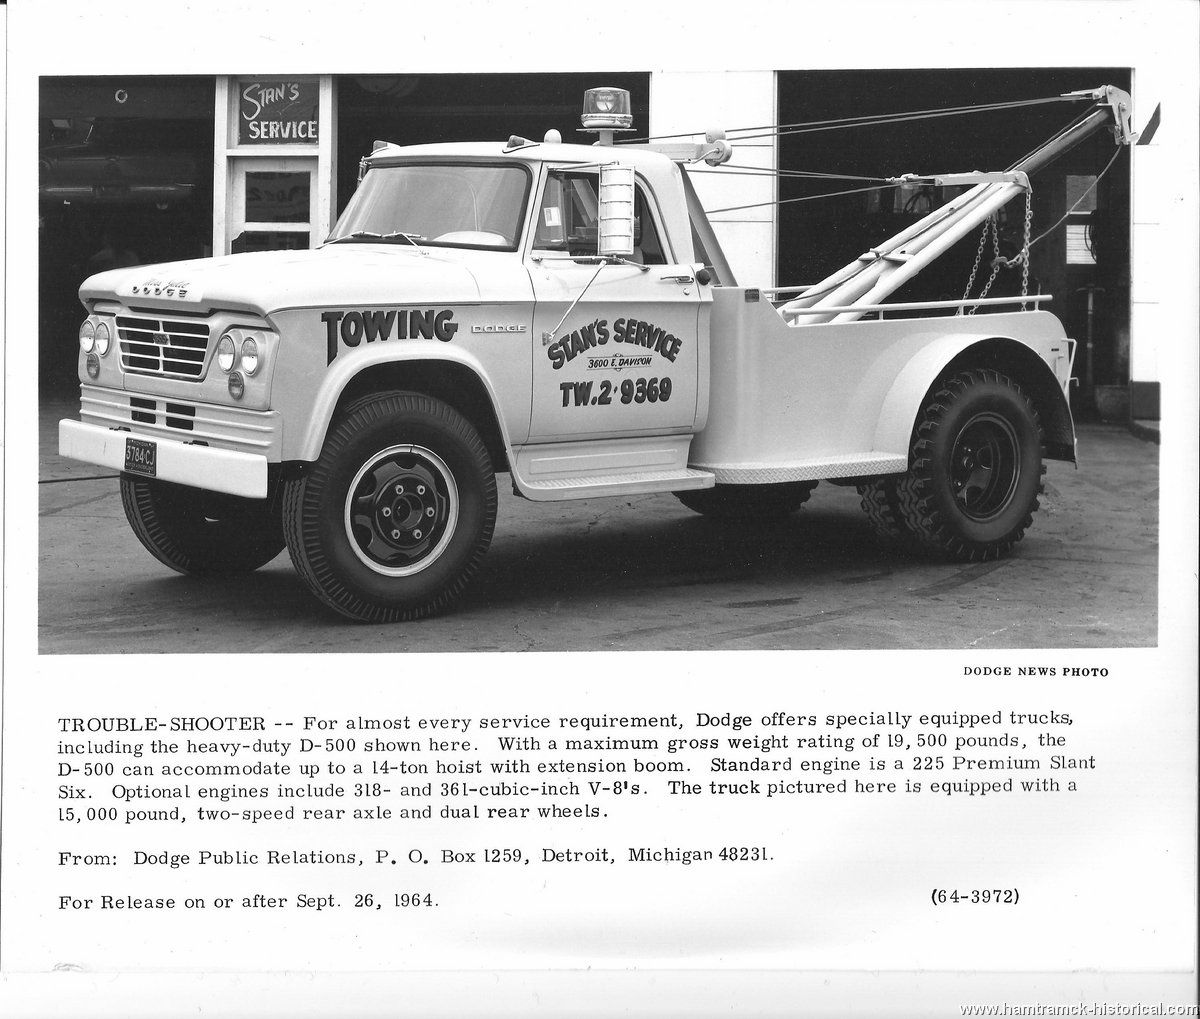 1964 DODGE D500 - Stan's Service www.TravisBarlow.com Towing Insurance & Auto Transporter Insurance for over 30 years